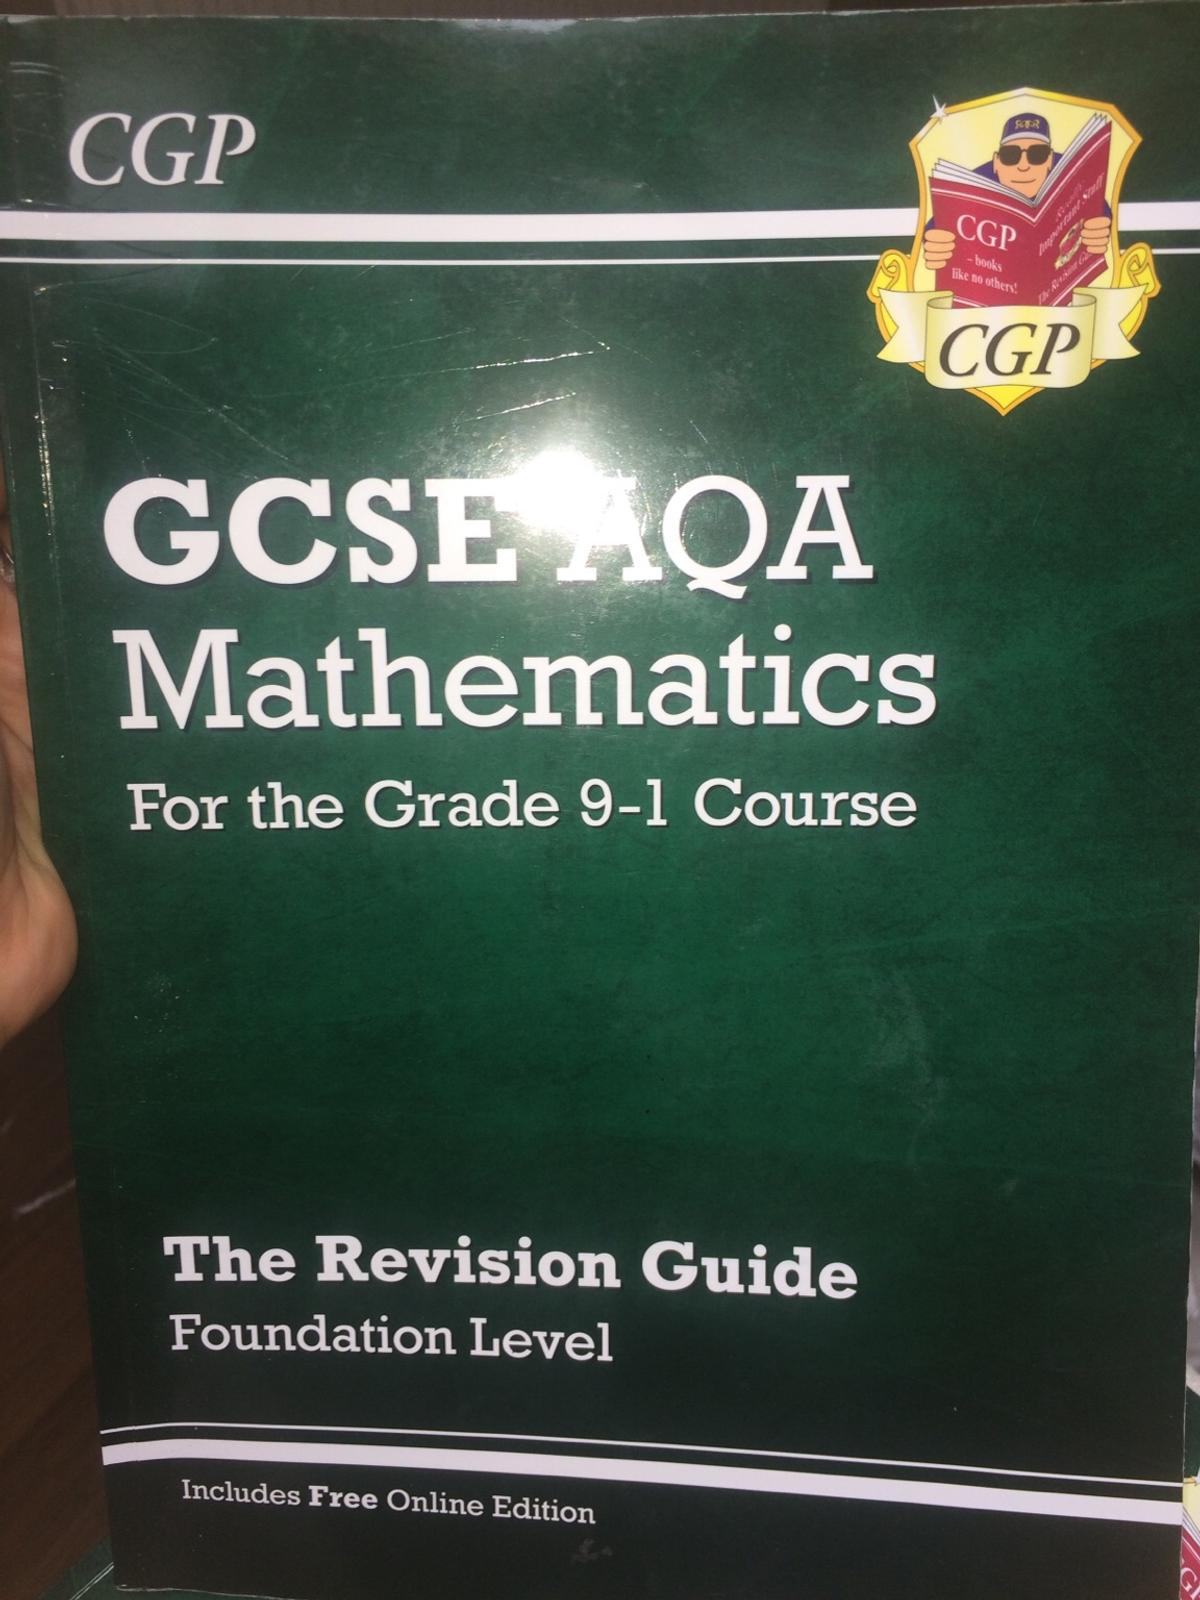 Brand new 1 book for £5 or 2 books for £8 Revision guide Foundation level